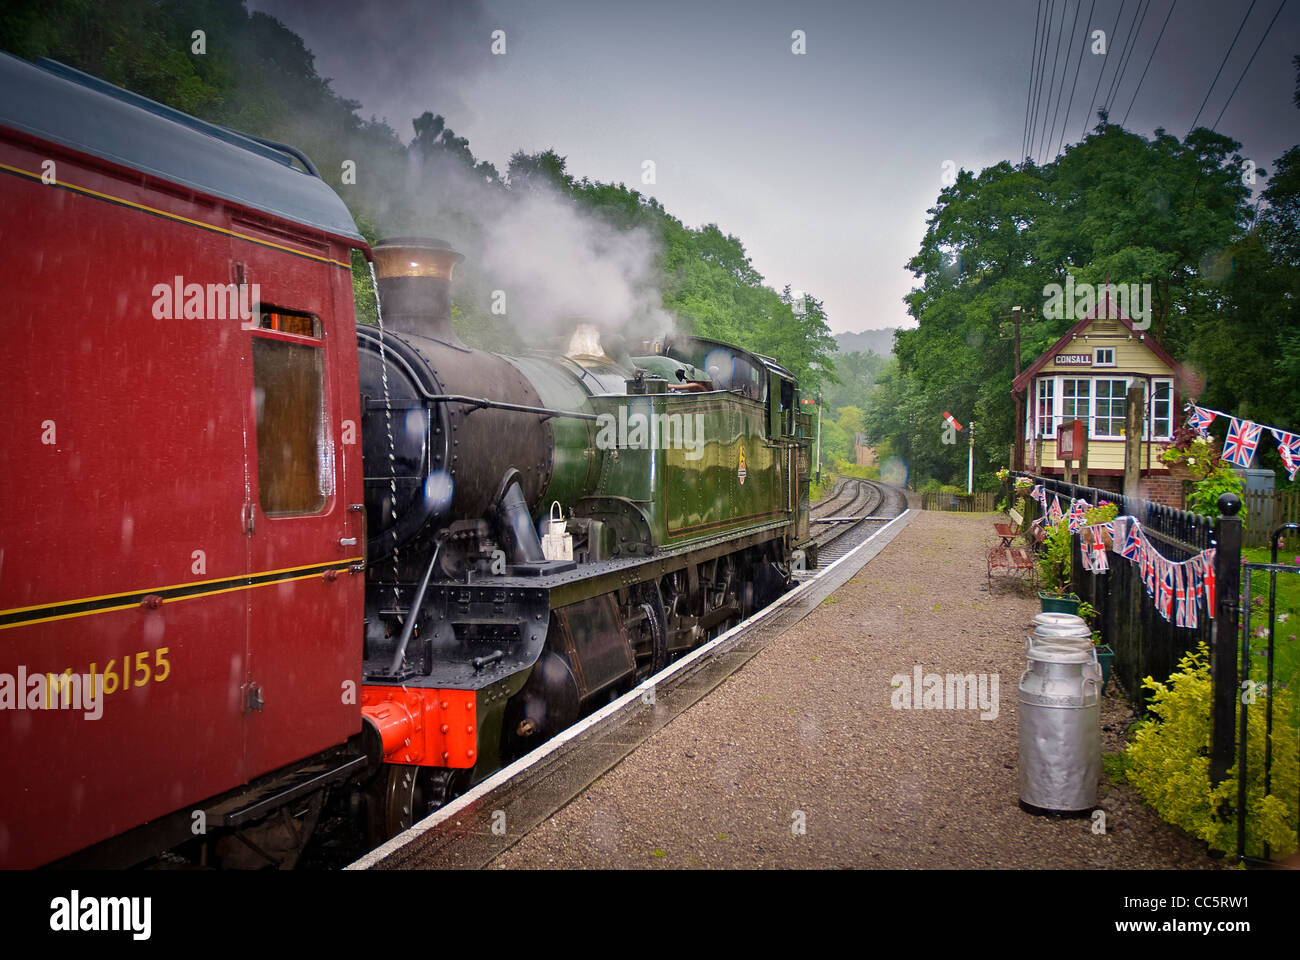 Consall station in the rain on the Churnet Valley railway. - Stock Image